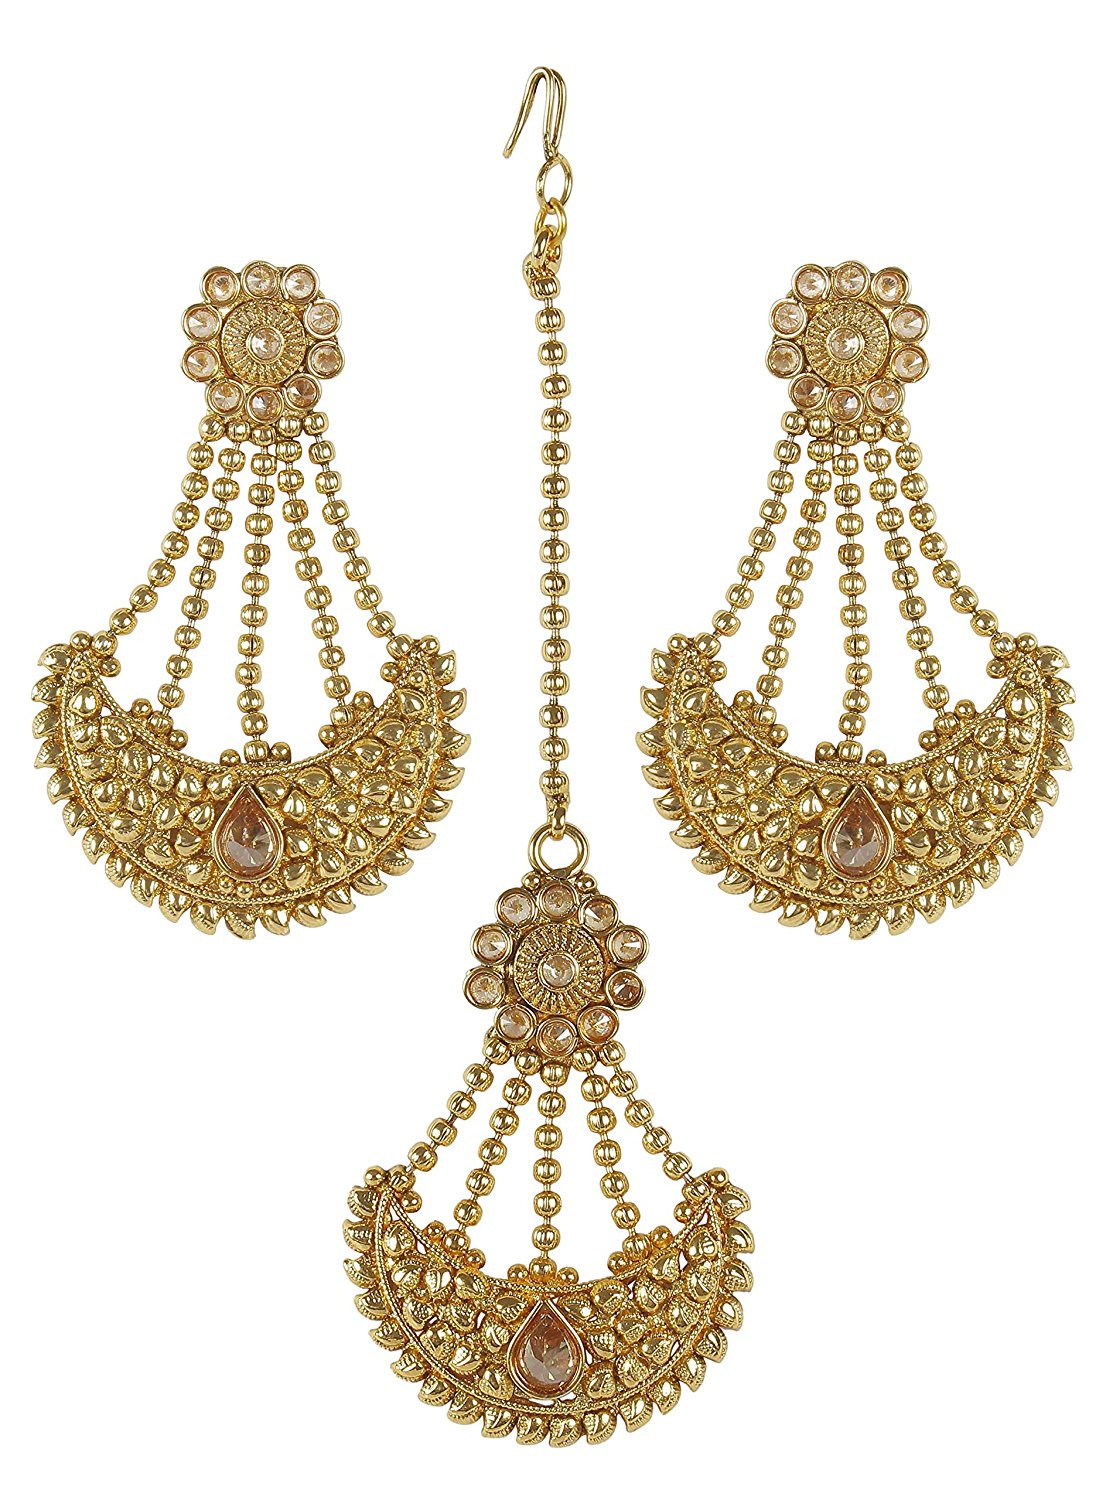 Light Weight Long Party Wear Indian Polki Jhumka Earringaang Tikka Bali Bohemia Drop Dangle Bollywood Style Jewelry For Wedding Bridal